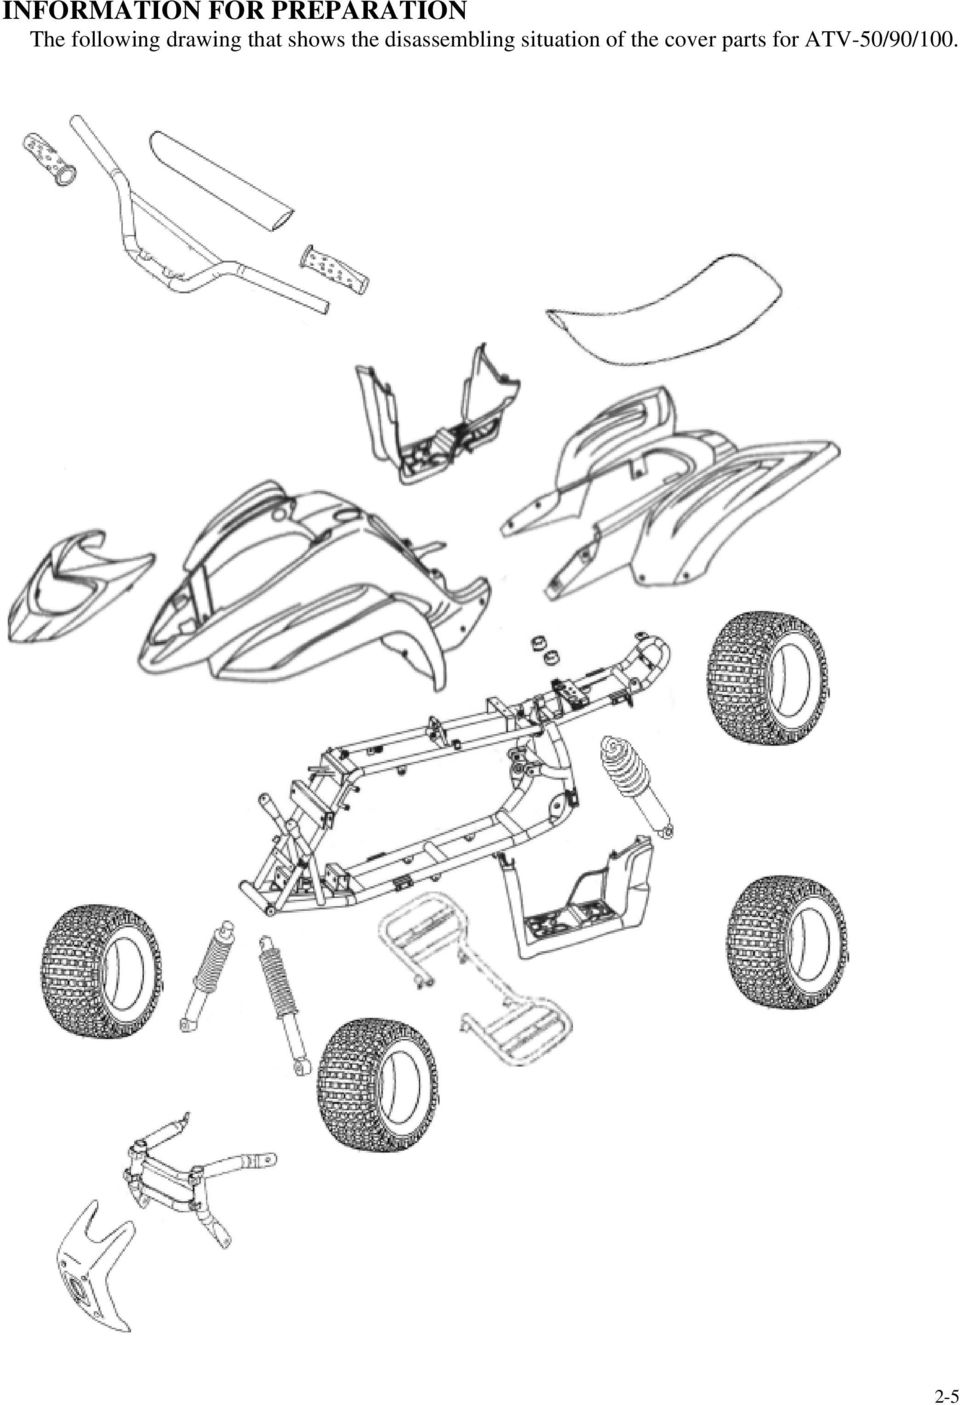 Service Manual Atv 50 90 100 Her Chee Industrial Co Ltd Carburetor Section Parts Diagram And List For Kubota Riding The Disassembling Situation Of